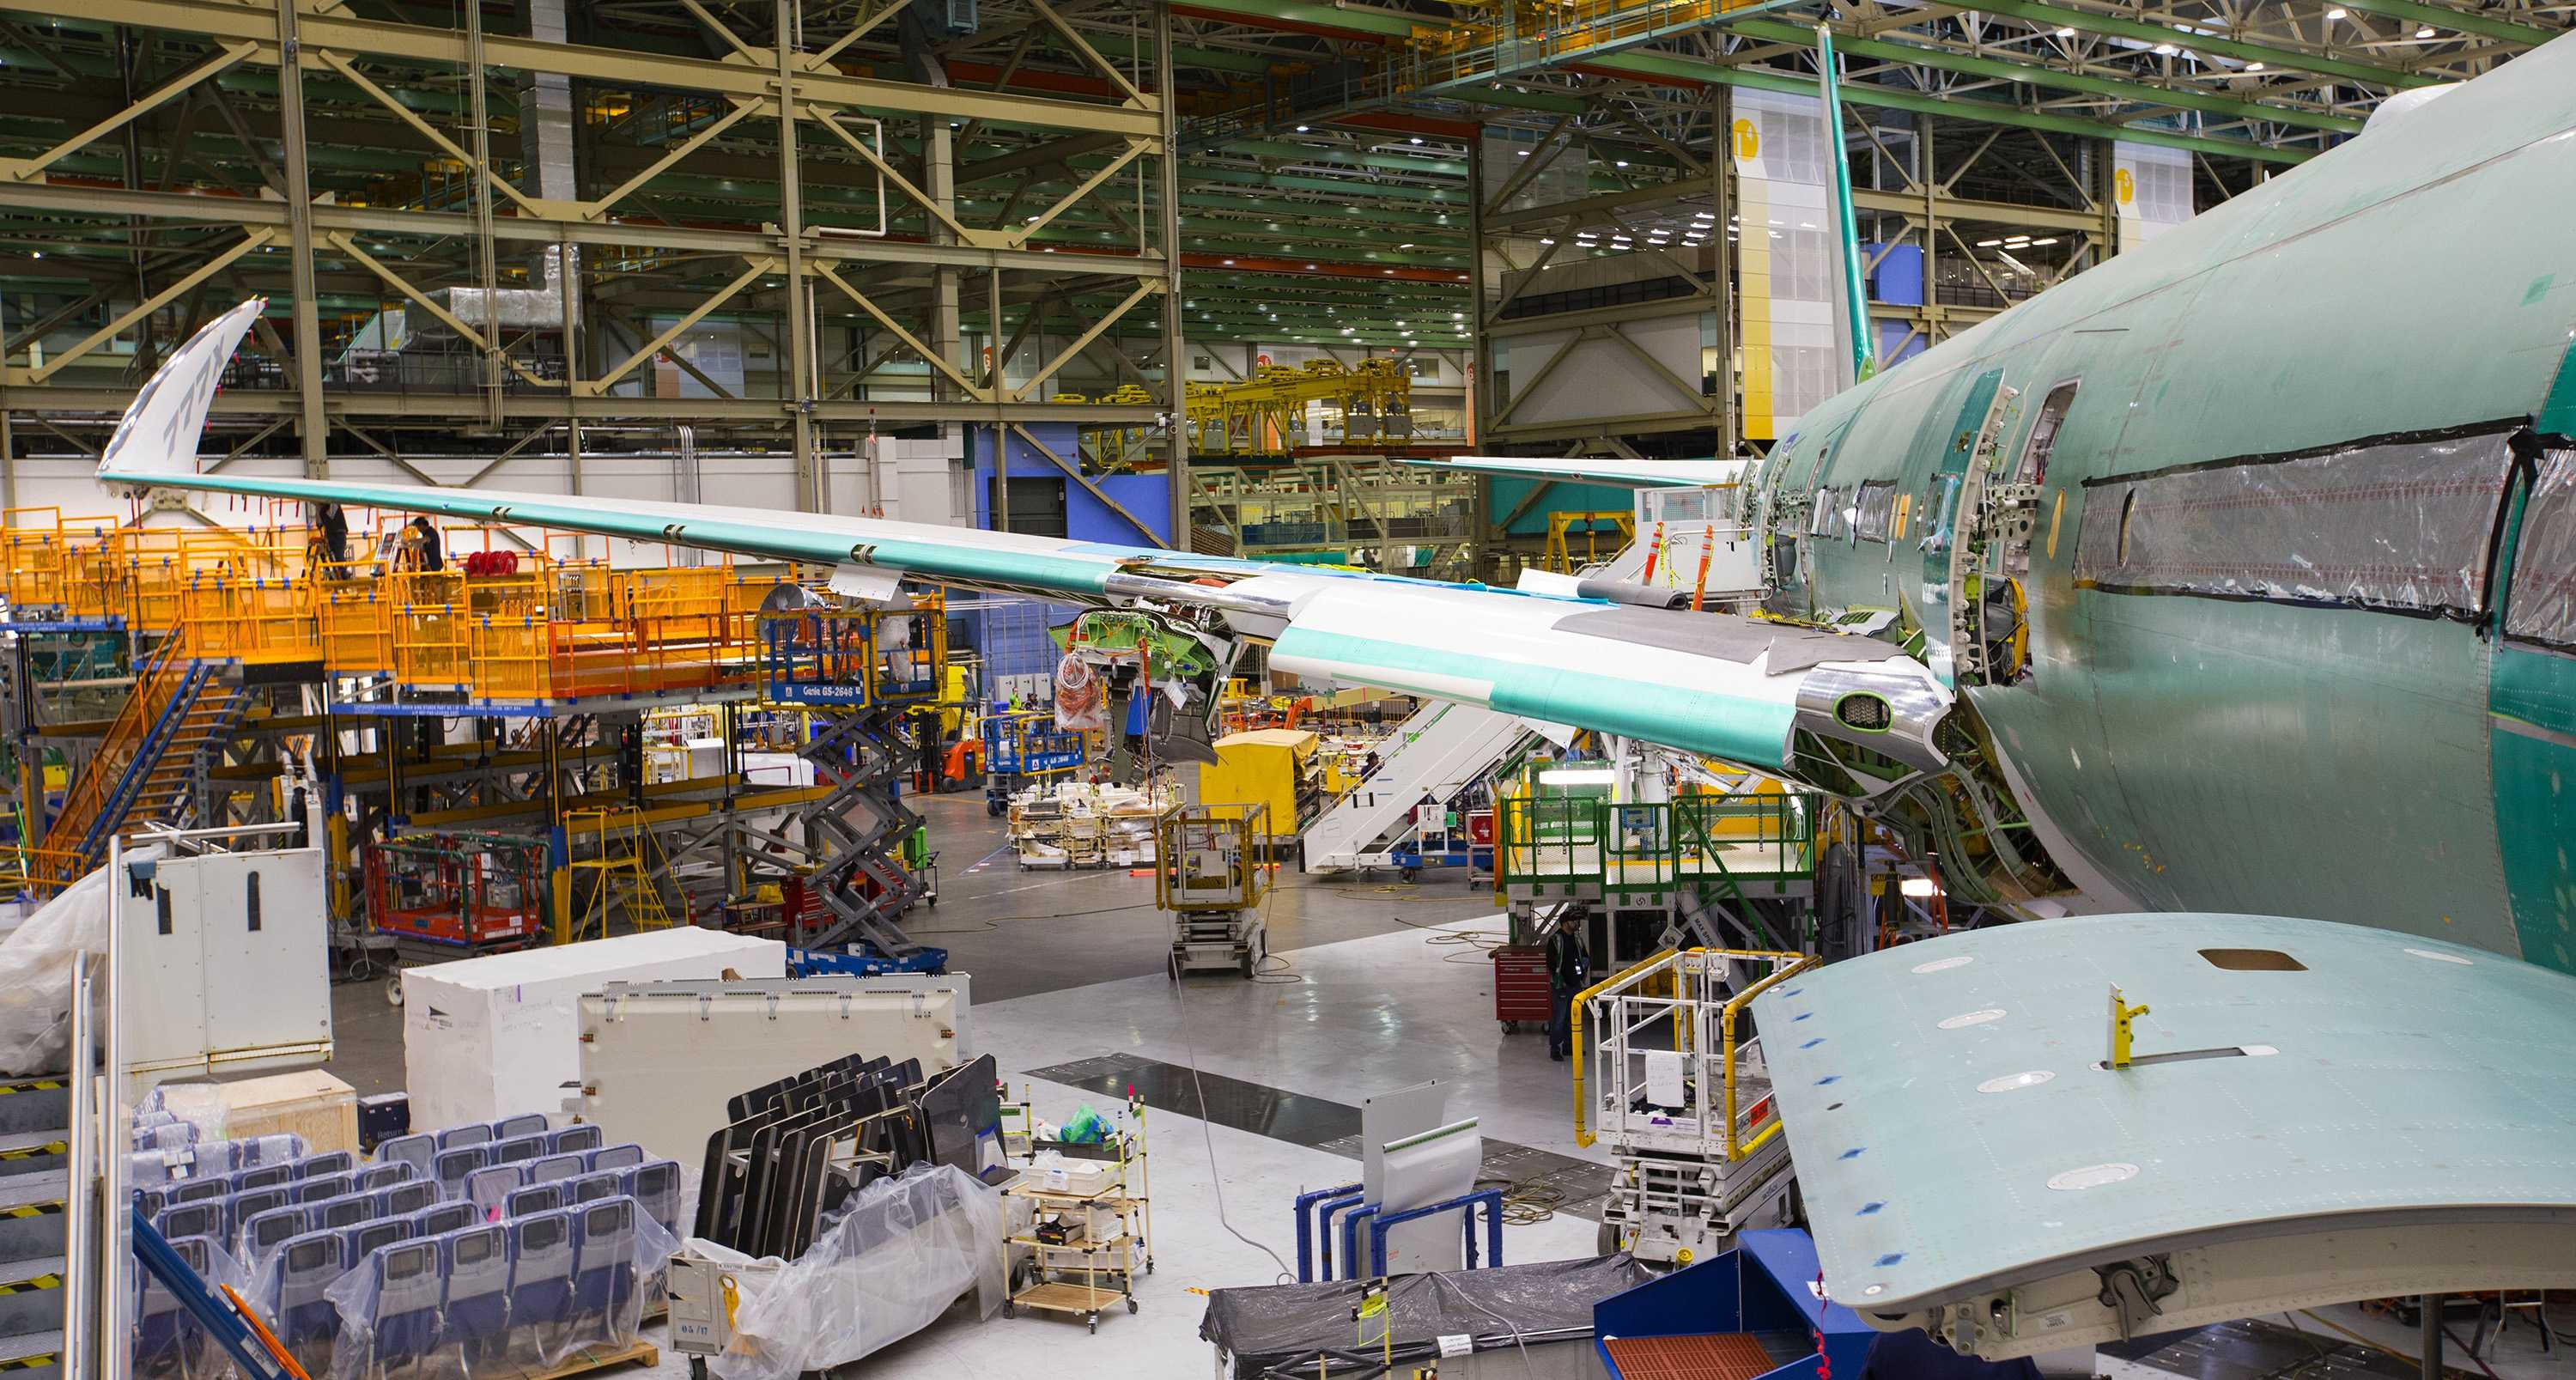 The wing of the new 777X, with the 11-ft wingtip folded up so it can fit inside the Everett assembly bay. It will similiarly be folded up to fit at airport gates. This airplane is the first 777X that will fly in 2019. (Mike Siegel/The Seattle Times/TNS)